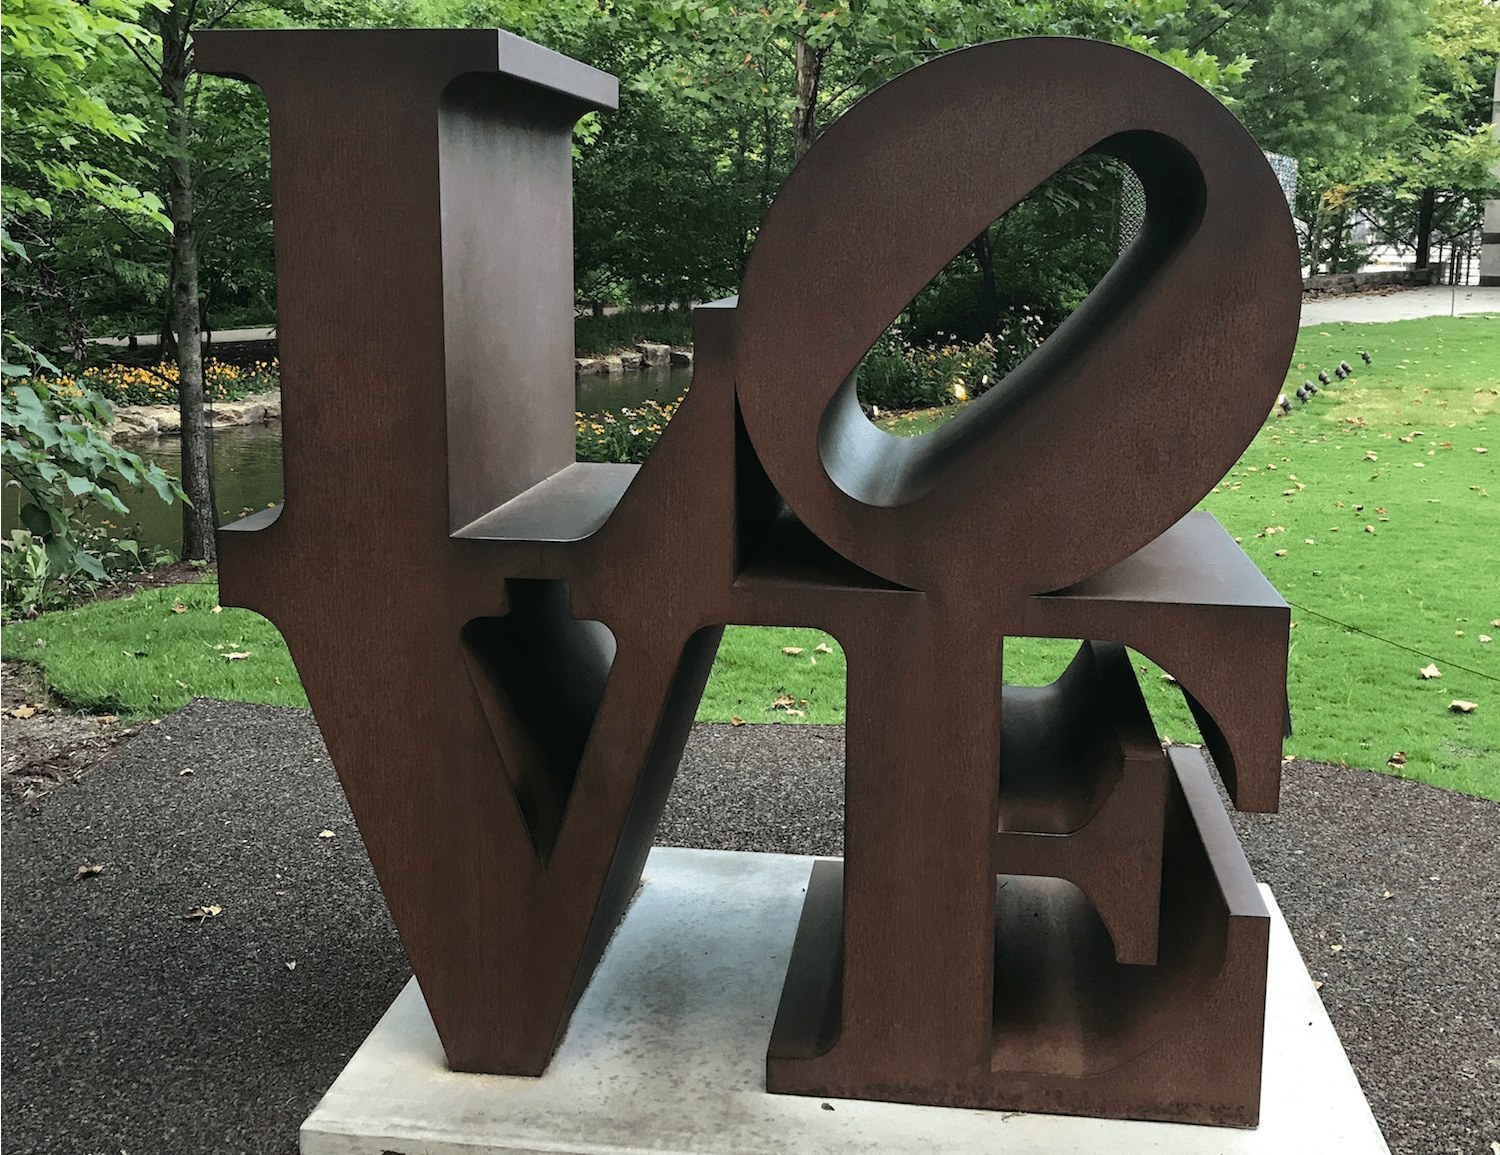 LOVe Sculpture - Crystal Bridges Museum of Art - Arkansas